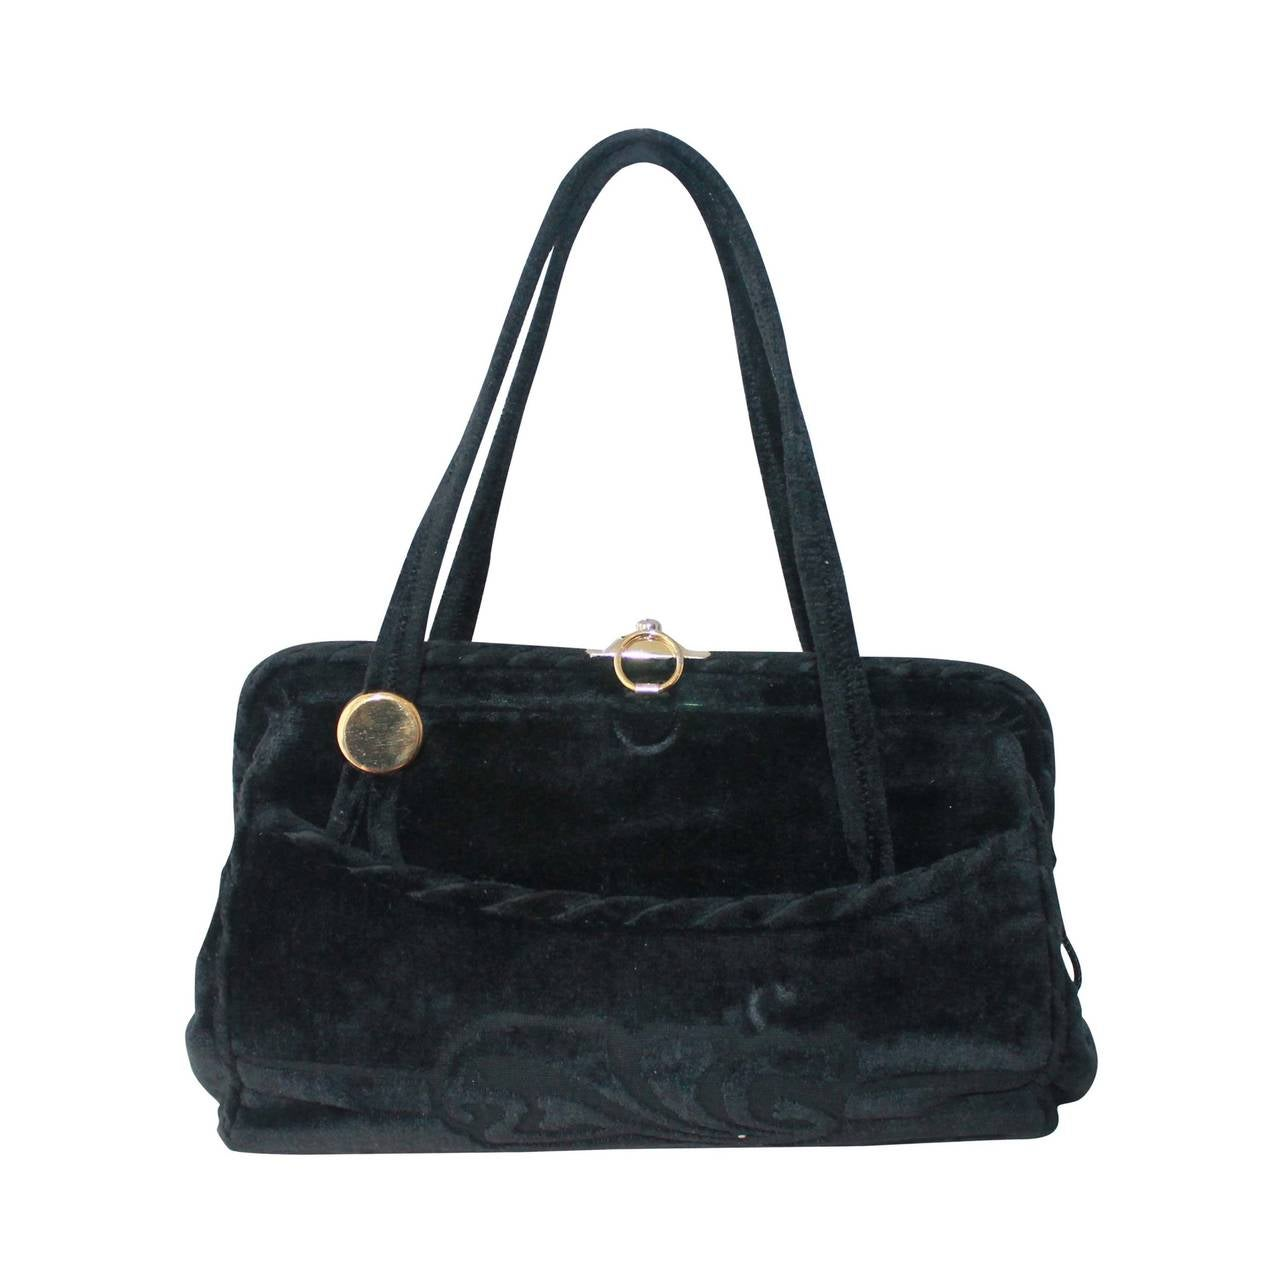 Get the best deals on juicy couture black velvet handbag and save up to 70% off at Poshmark now! Whatever you're shopping for, we've got it.